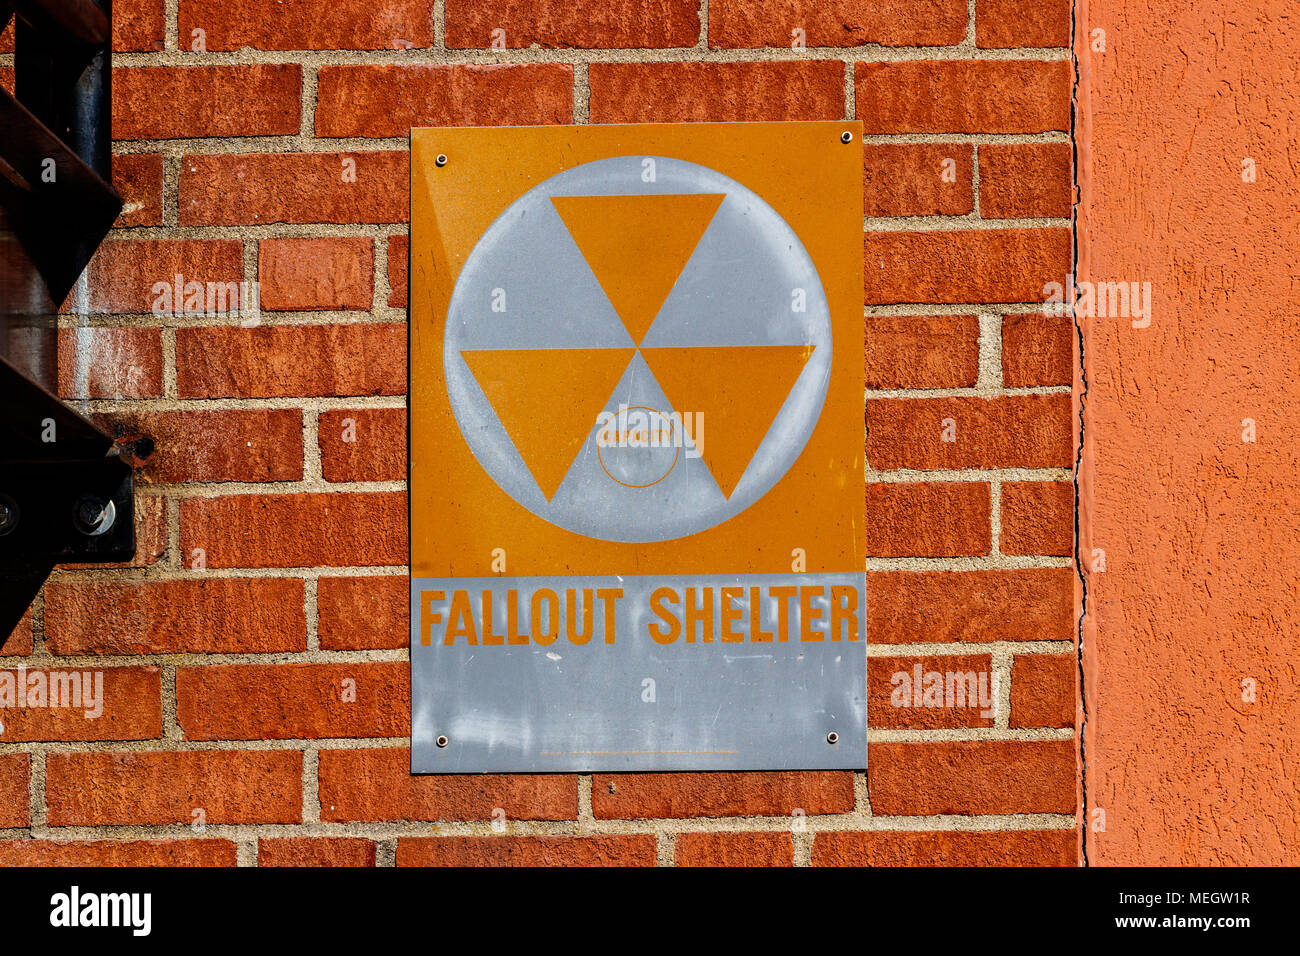 Orange 'Fallout Shelter' sign on a brick wall. With North Korea performing nuclear missile tests, Fallout Shelters may become more popular I - Stock Photo